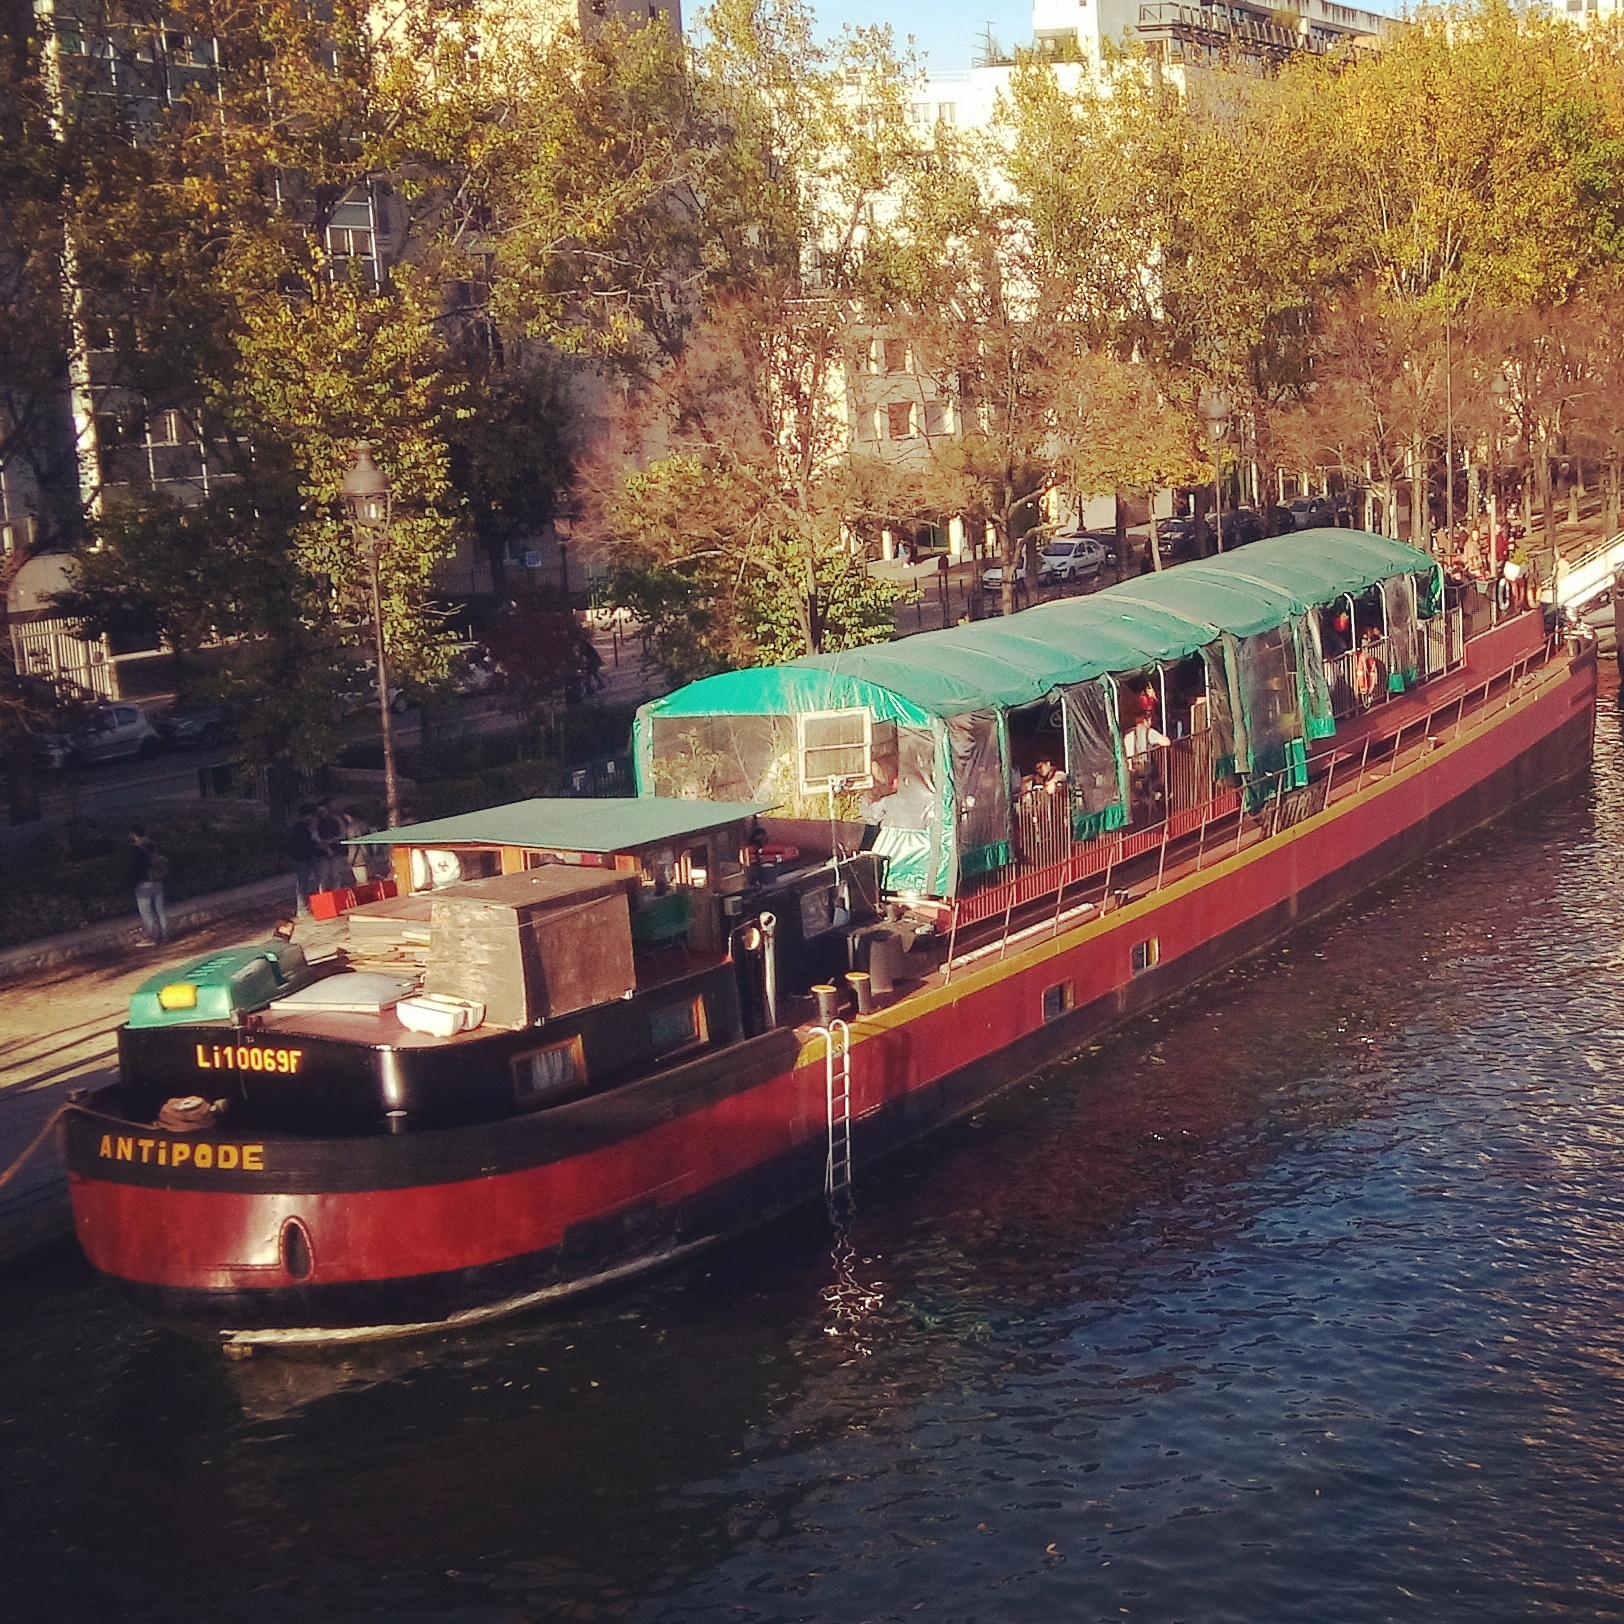 Sunday walk on the parisians canal